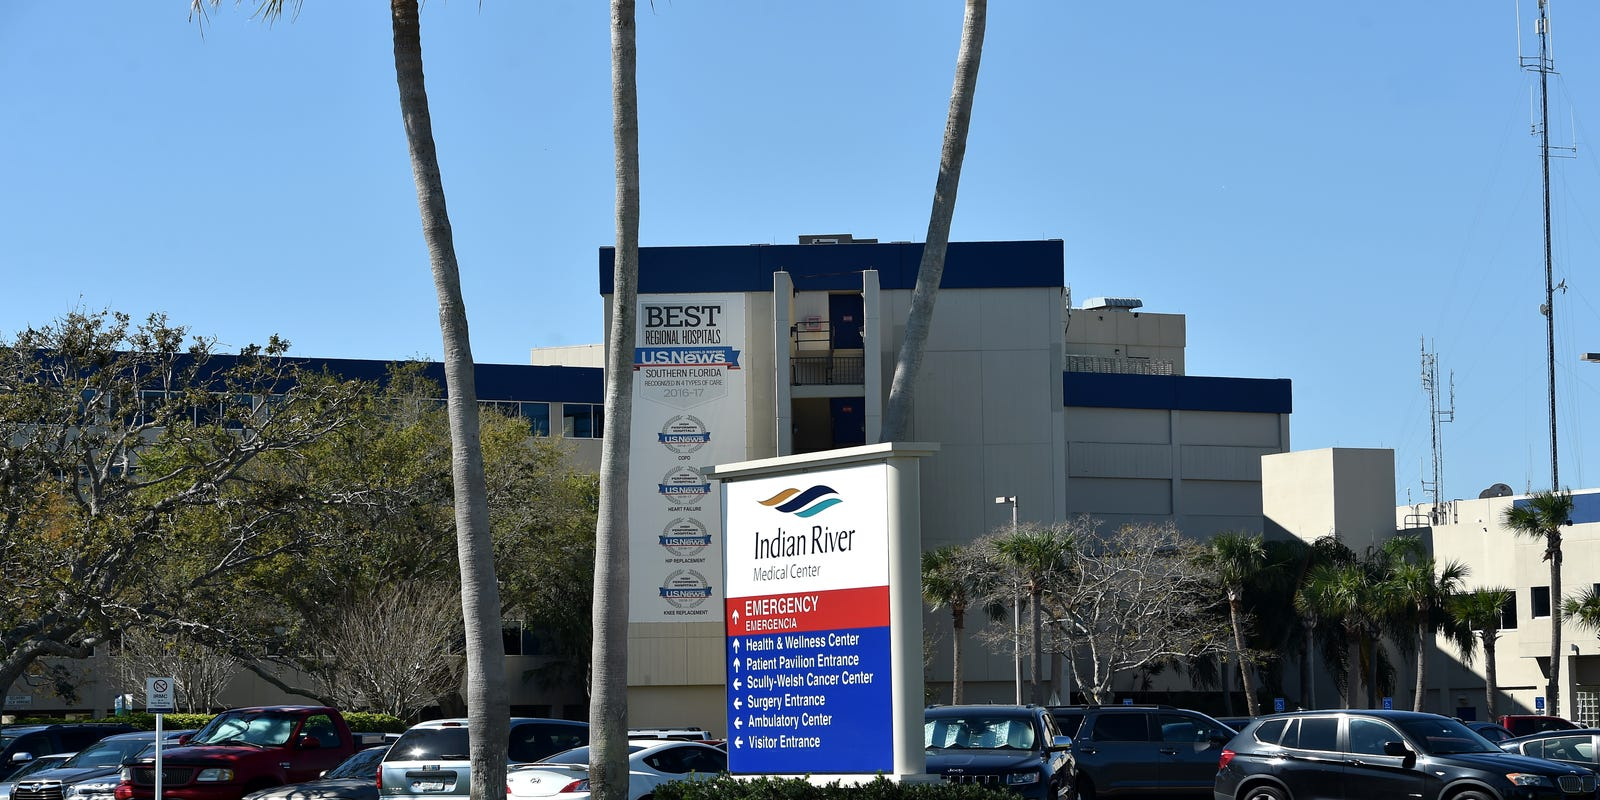 Cleveland Clinic to invest $250 million in Indian River